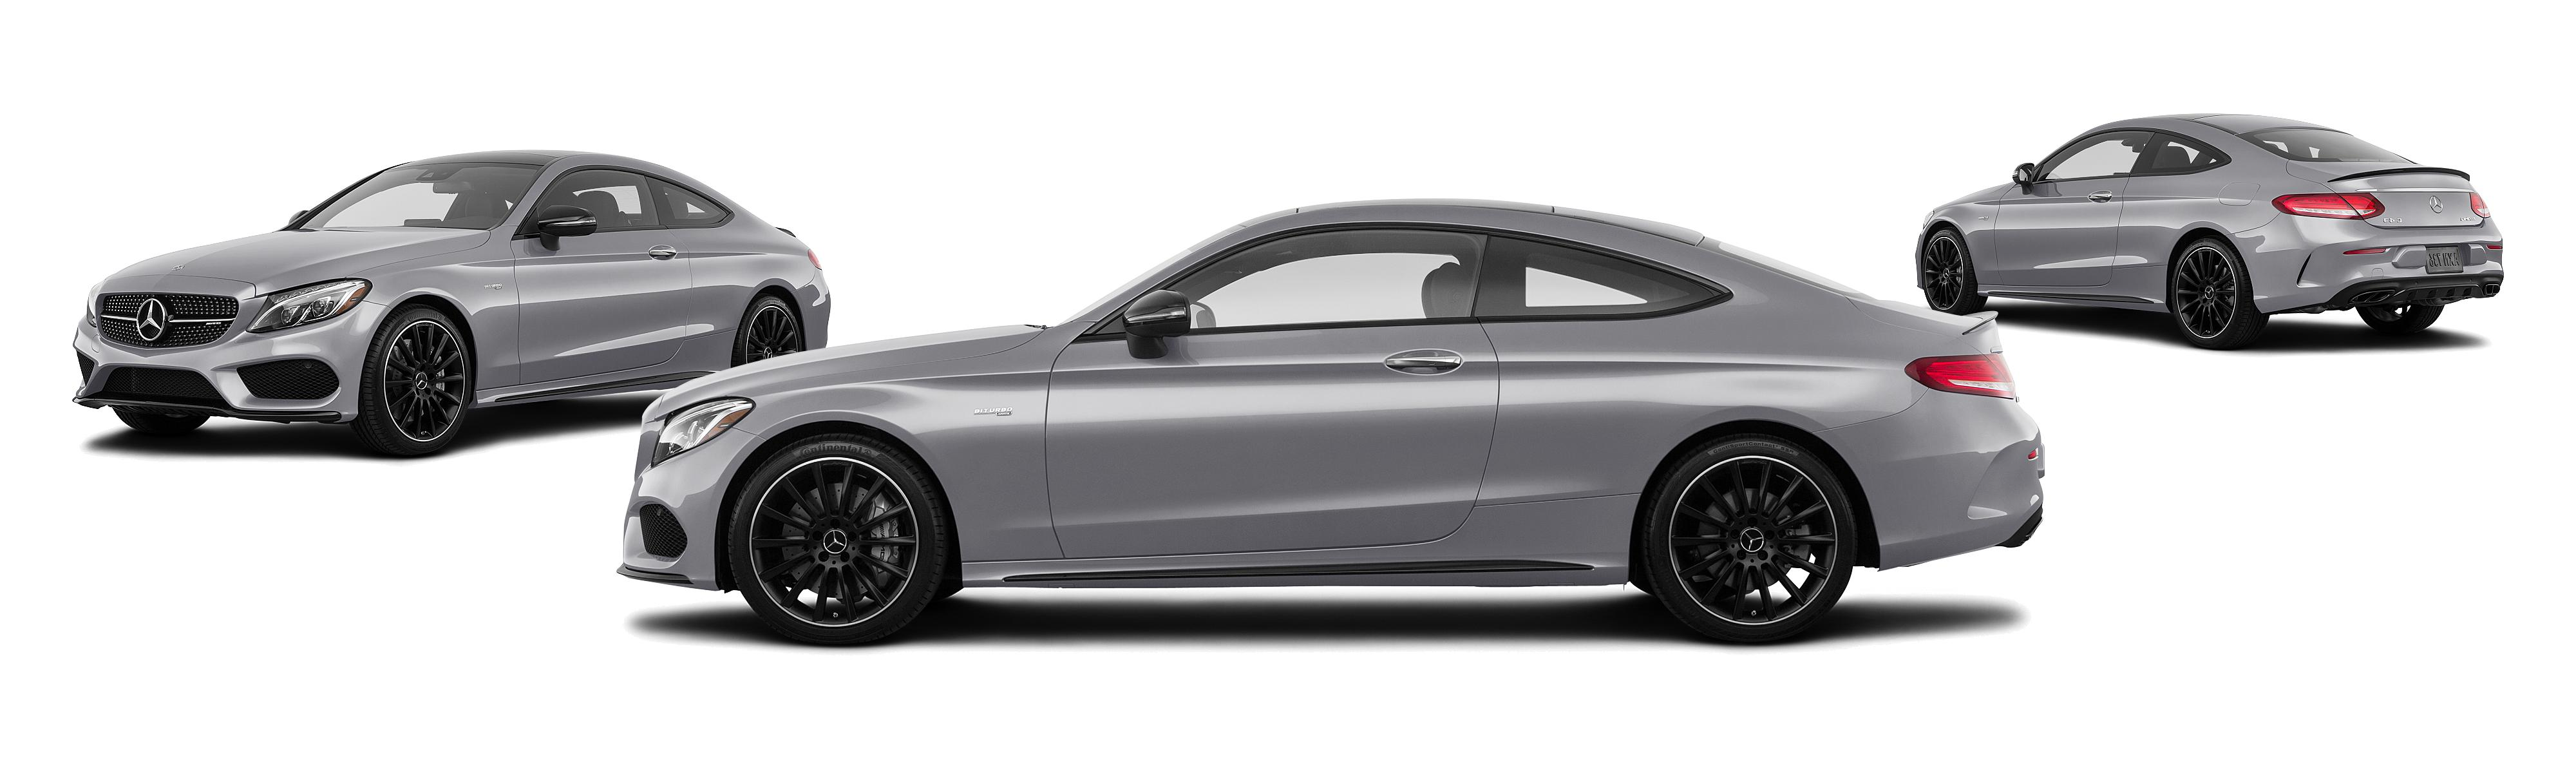 2018 Mercedes Benz C Class AMG C 63 2dr Coupe Research GrooveCar